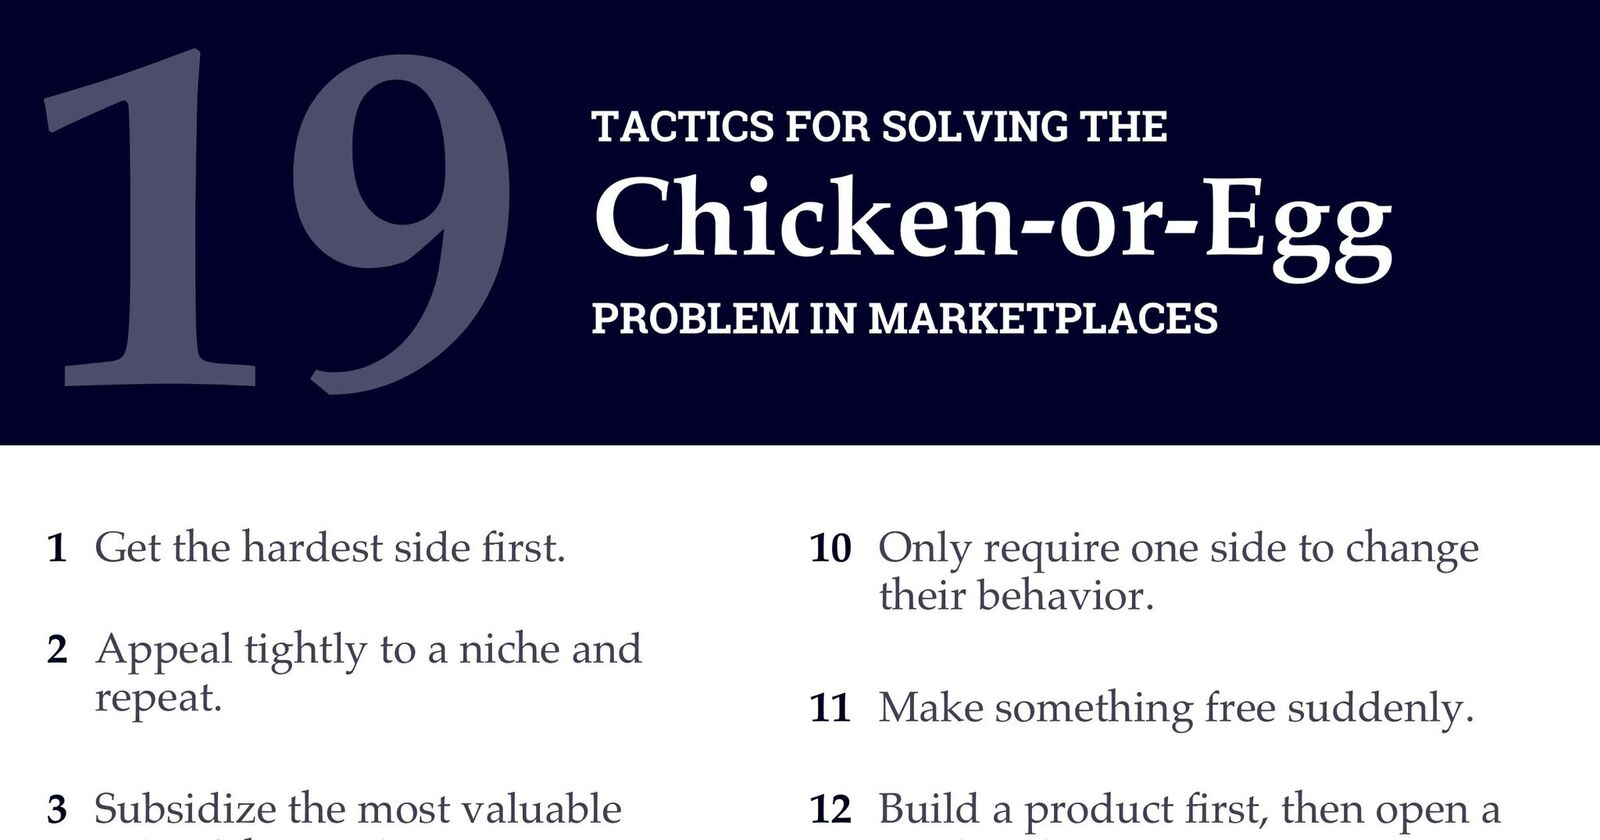 19 Tactics to Solve the Chicken-or-Egg Problem and Grow Your Marketplace